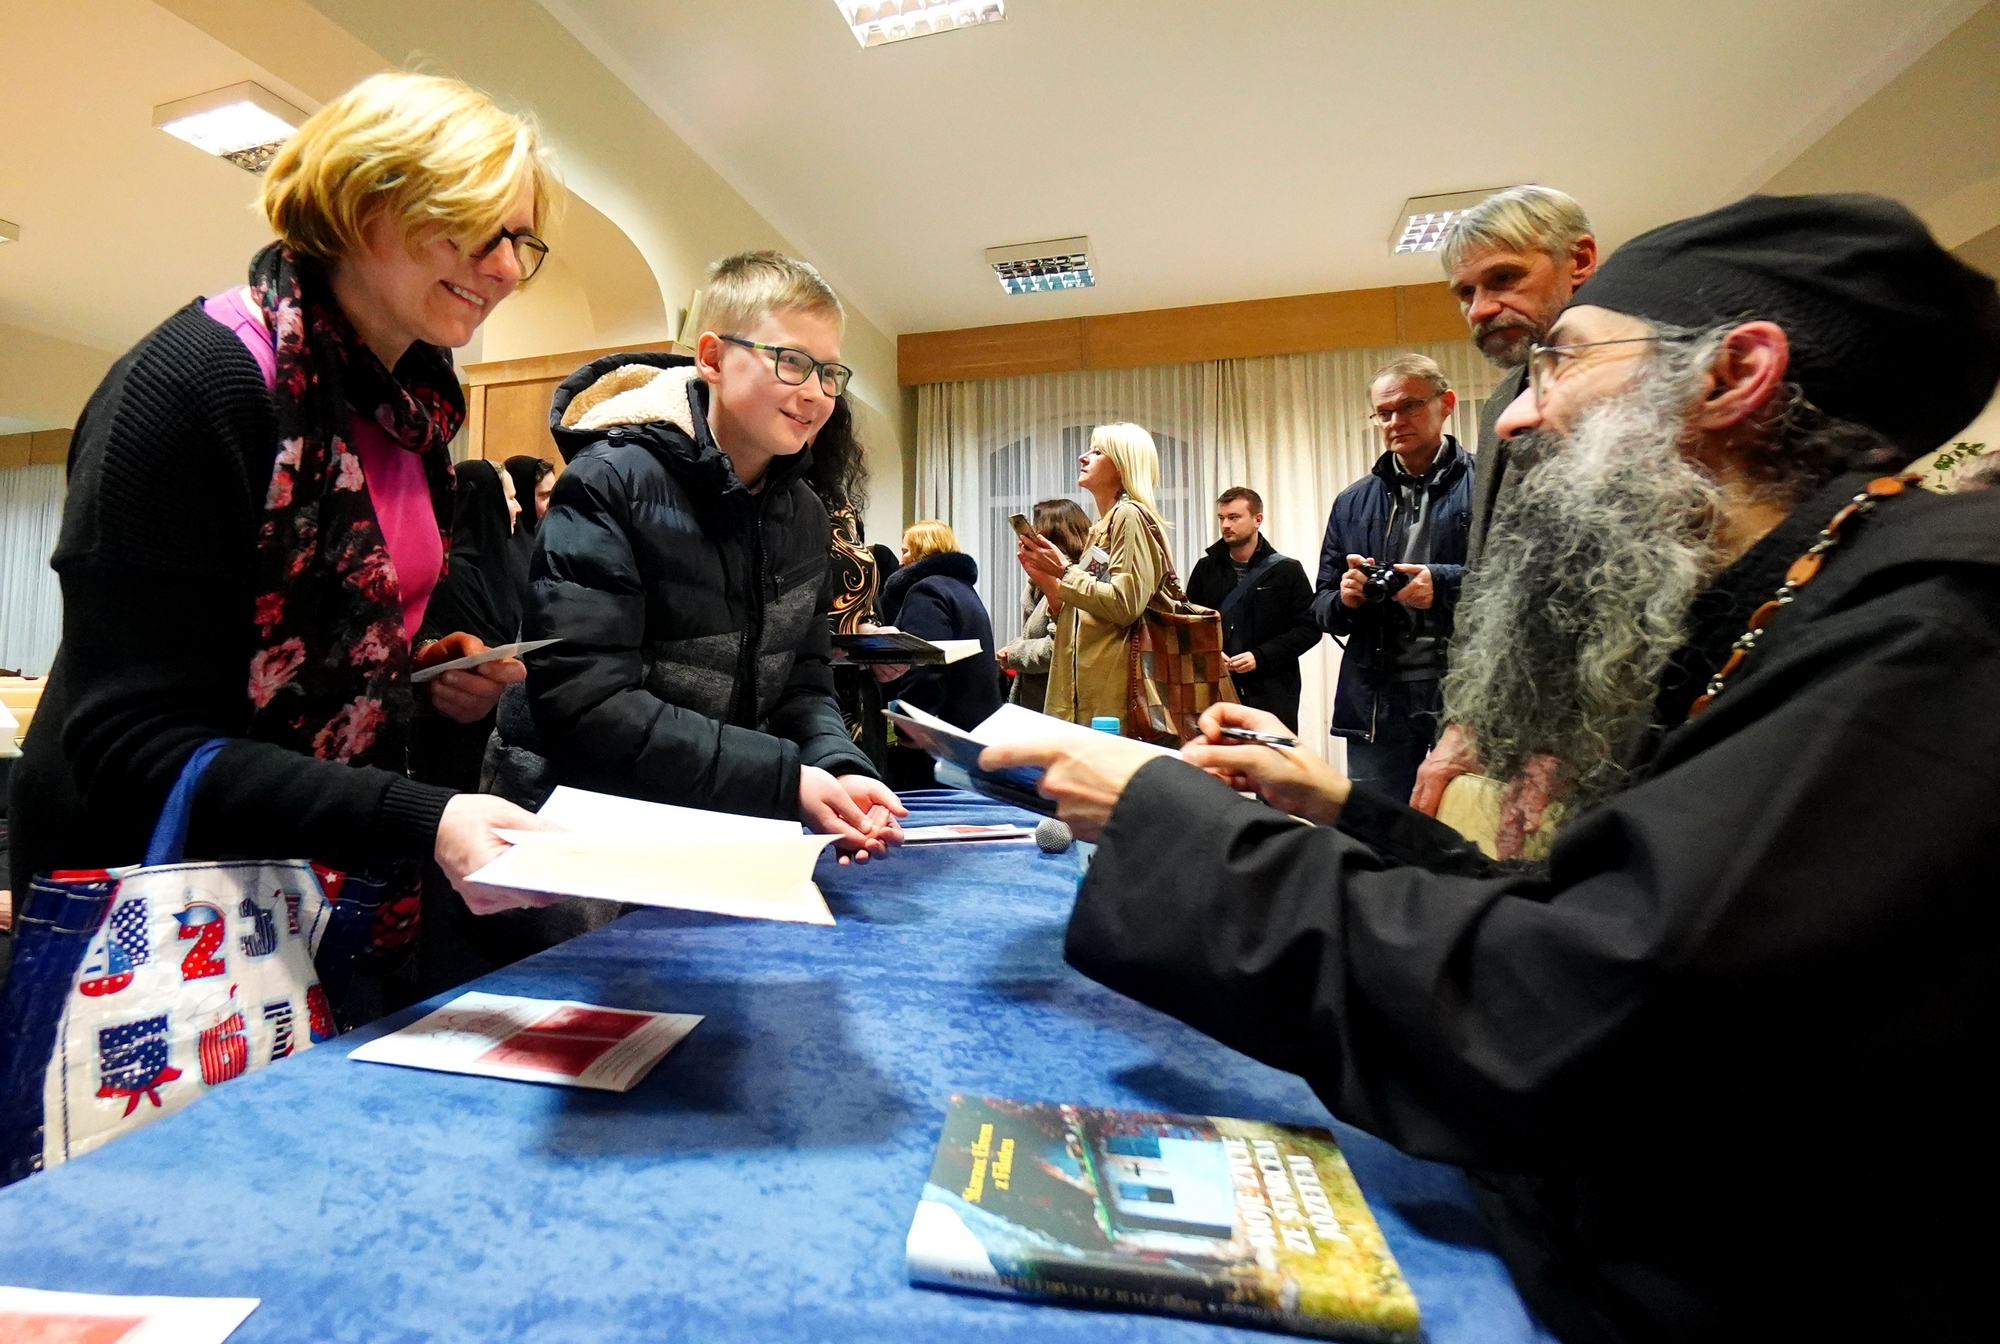 Meeting in Białystok with hieromonk Efraim from Alaska